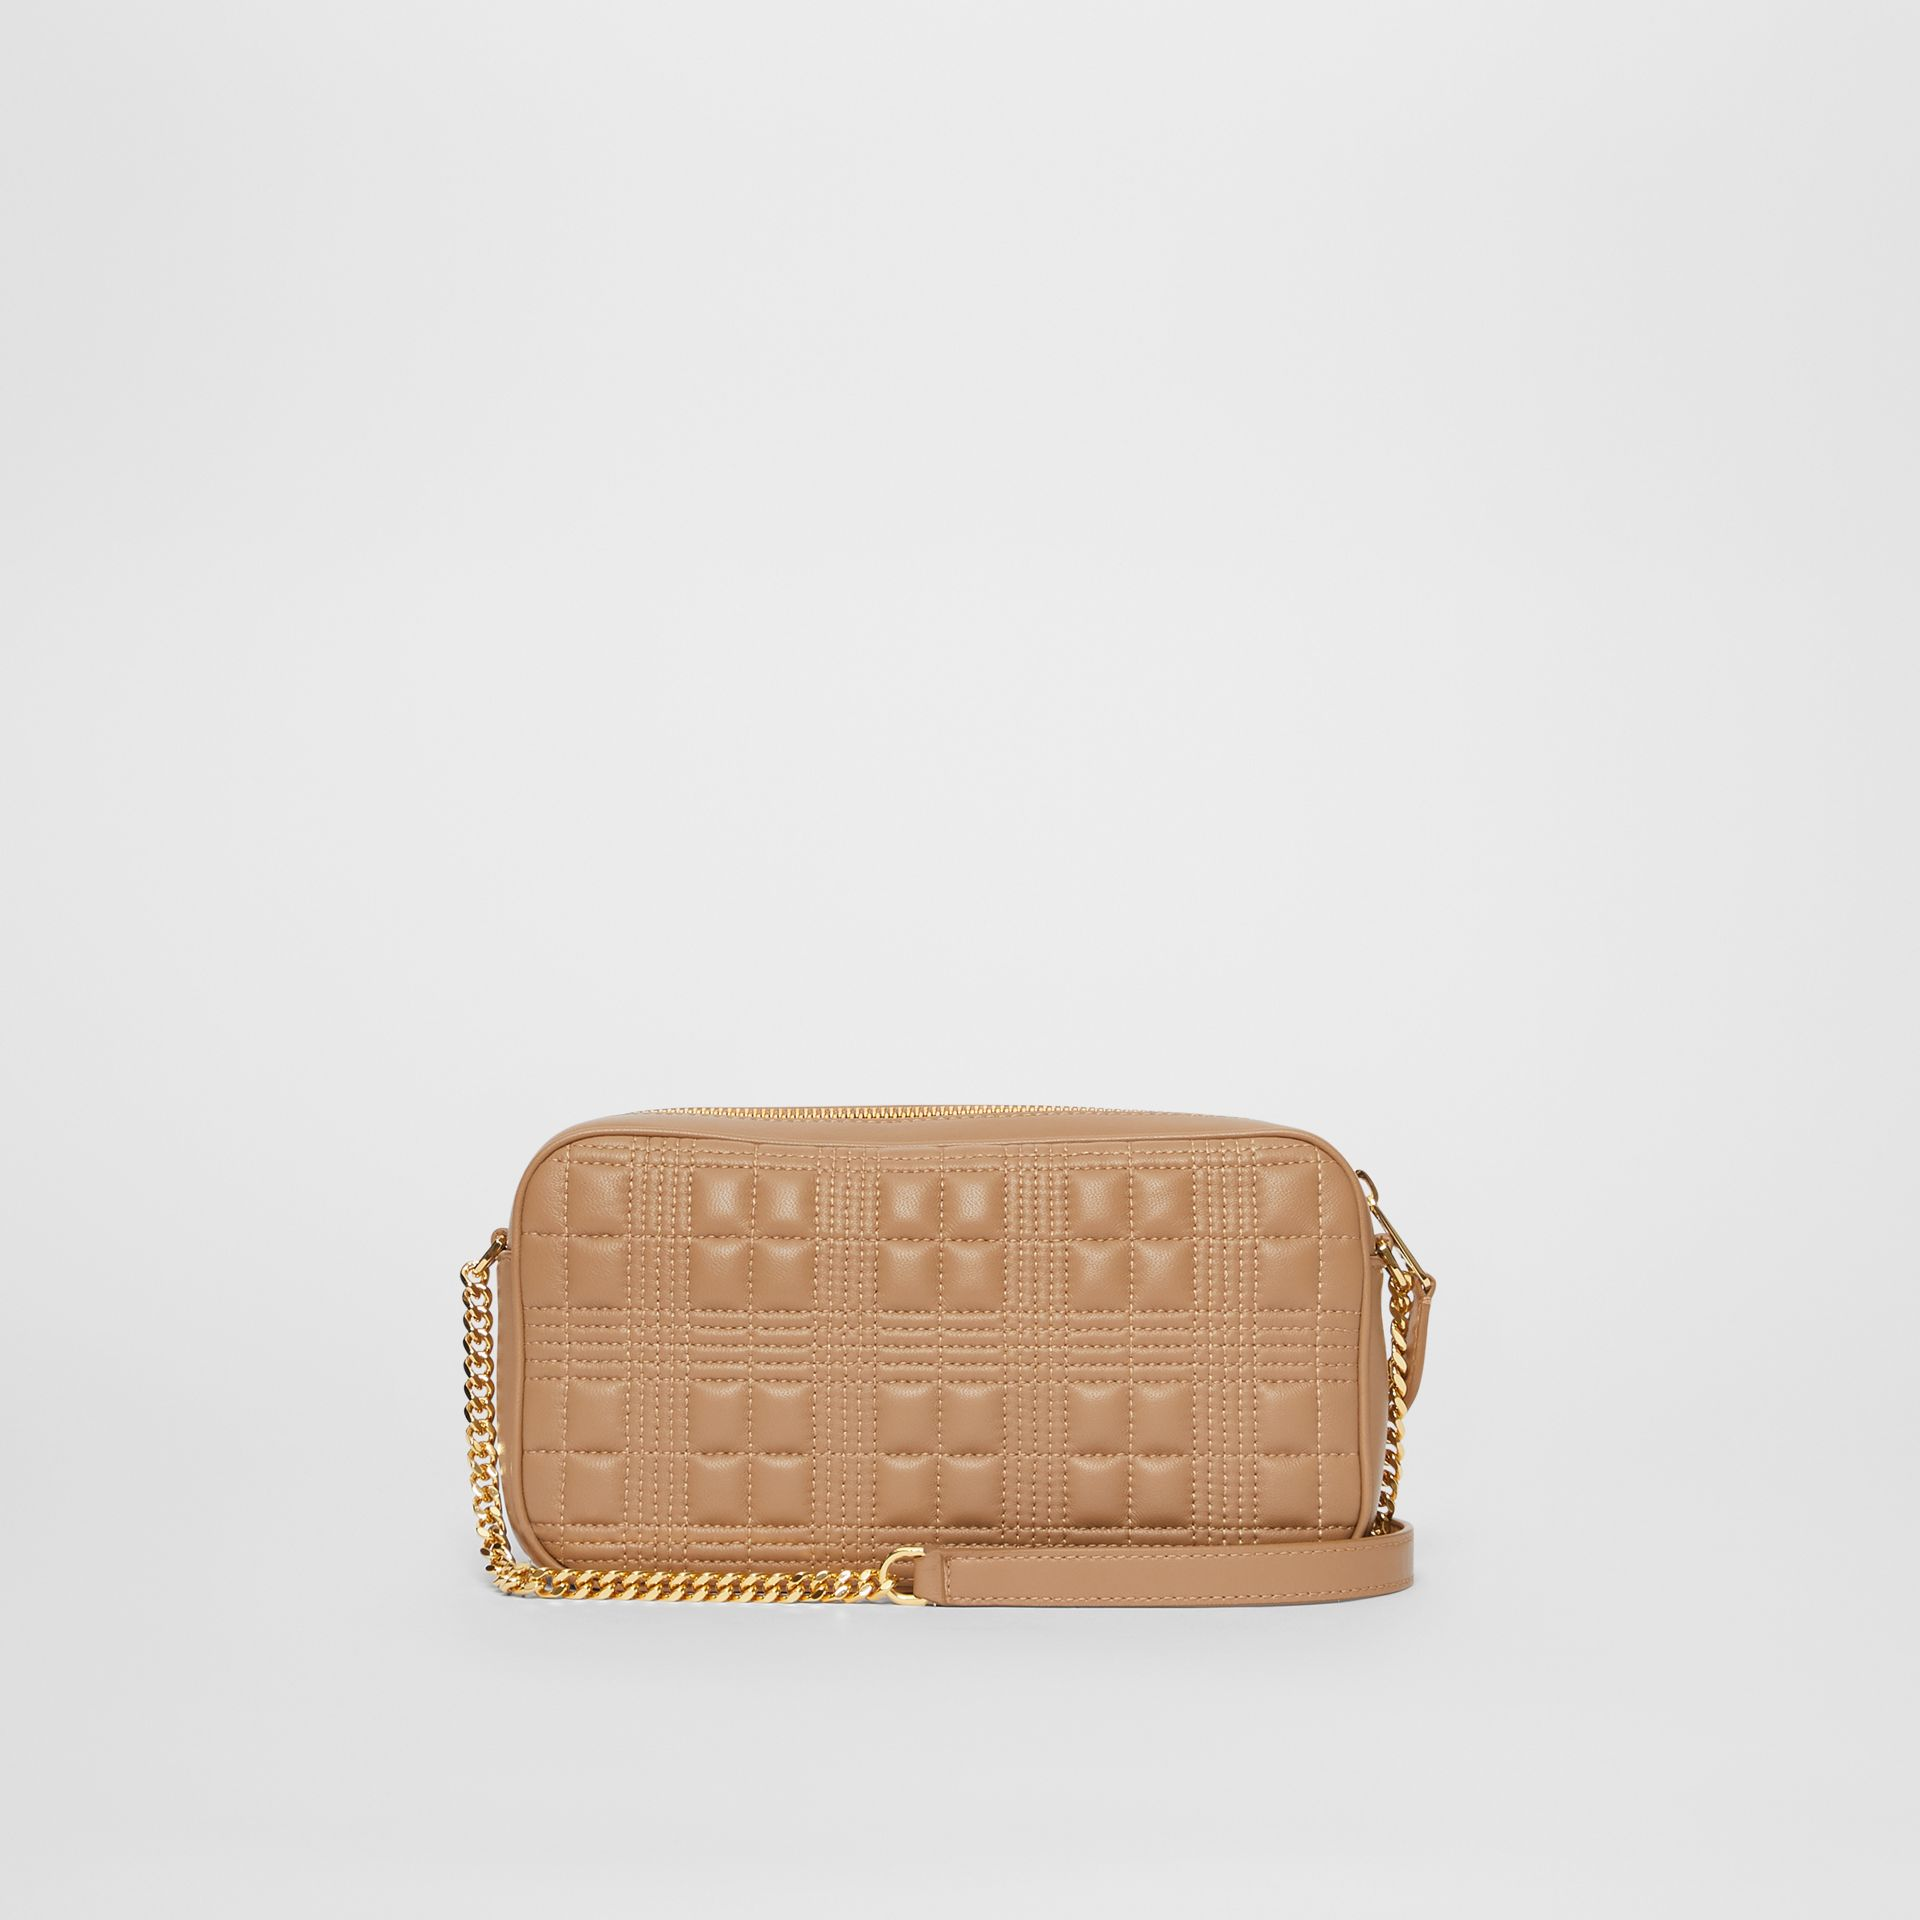 Quilted Lambskin Camera Bag in Camel - Women | Burberry United Kingdom - gallery image 7